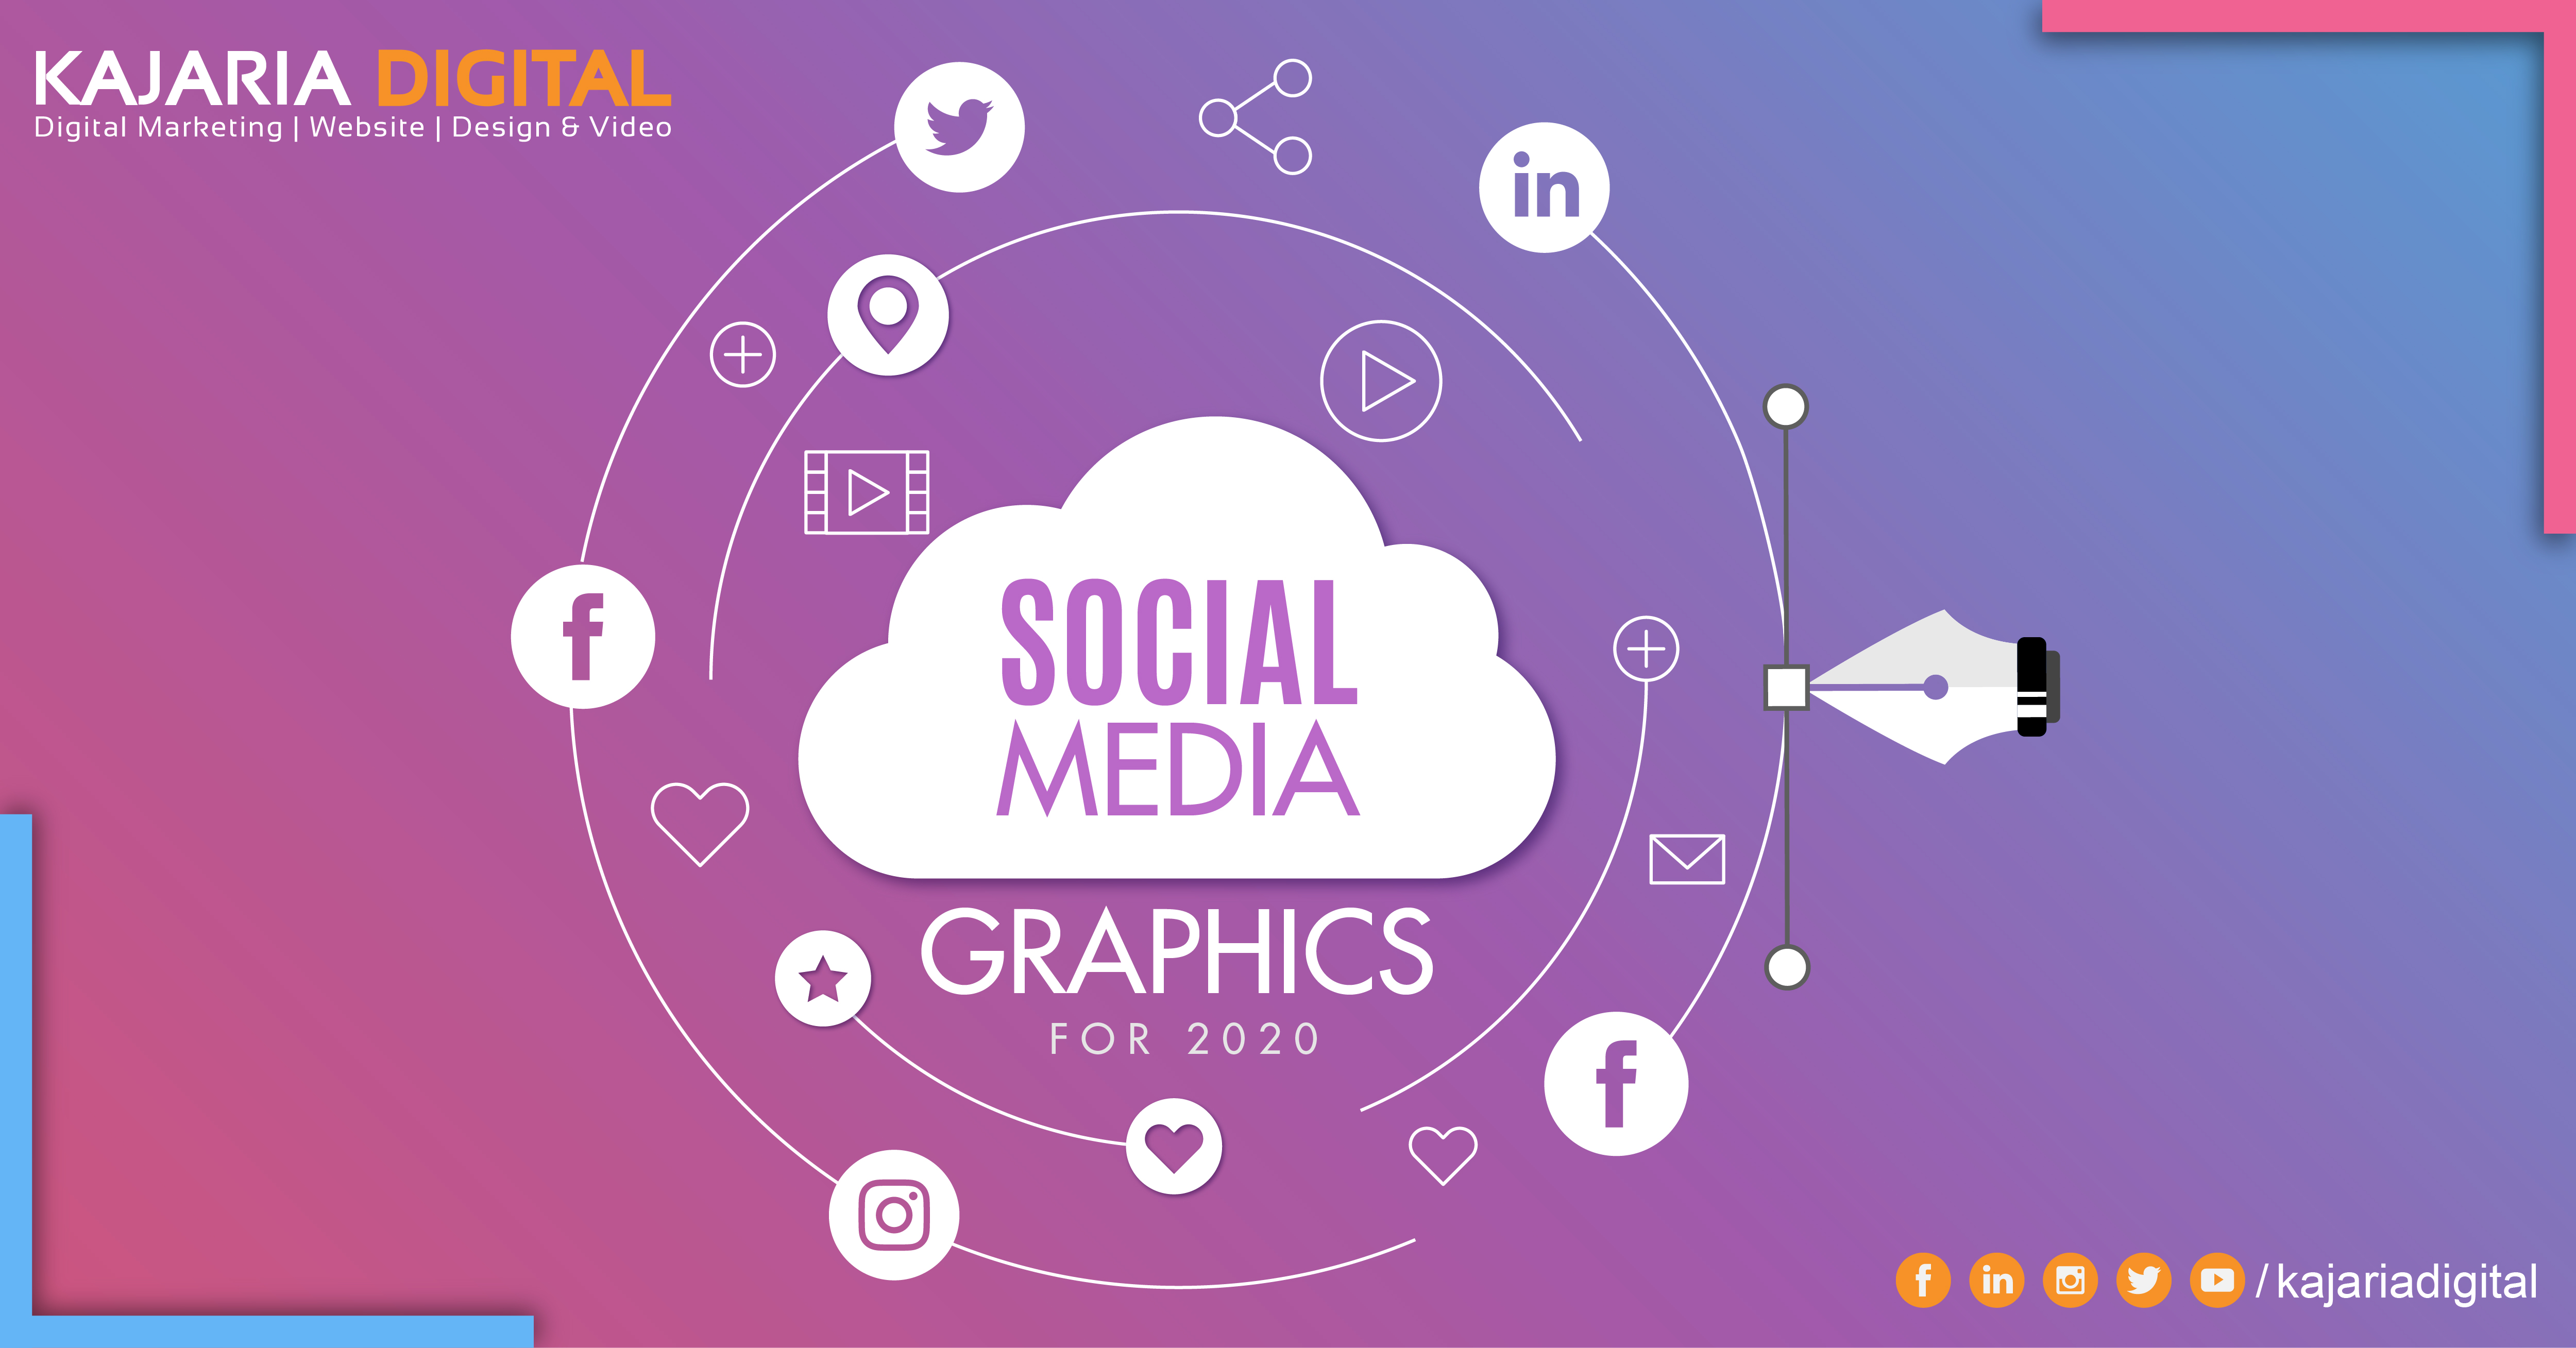 5 Social Media Graphic Design Trends You Need To Know For 2020 Best Website Branding Company Kajaria Digital Blog